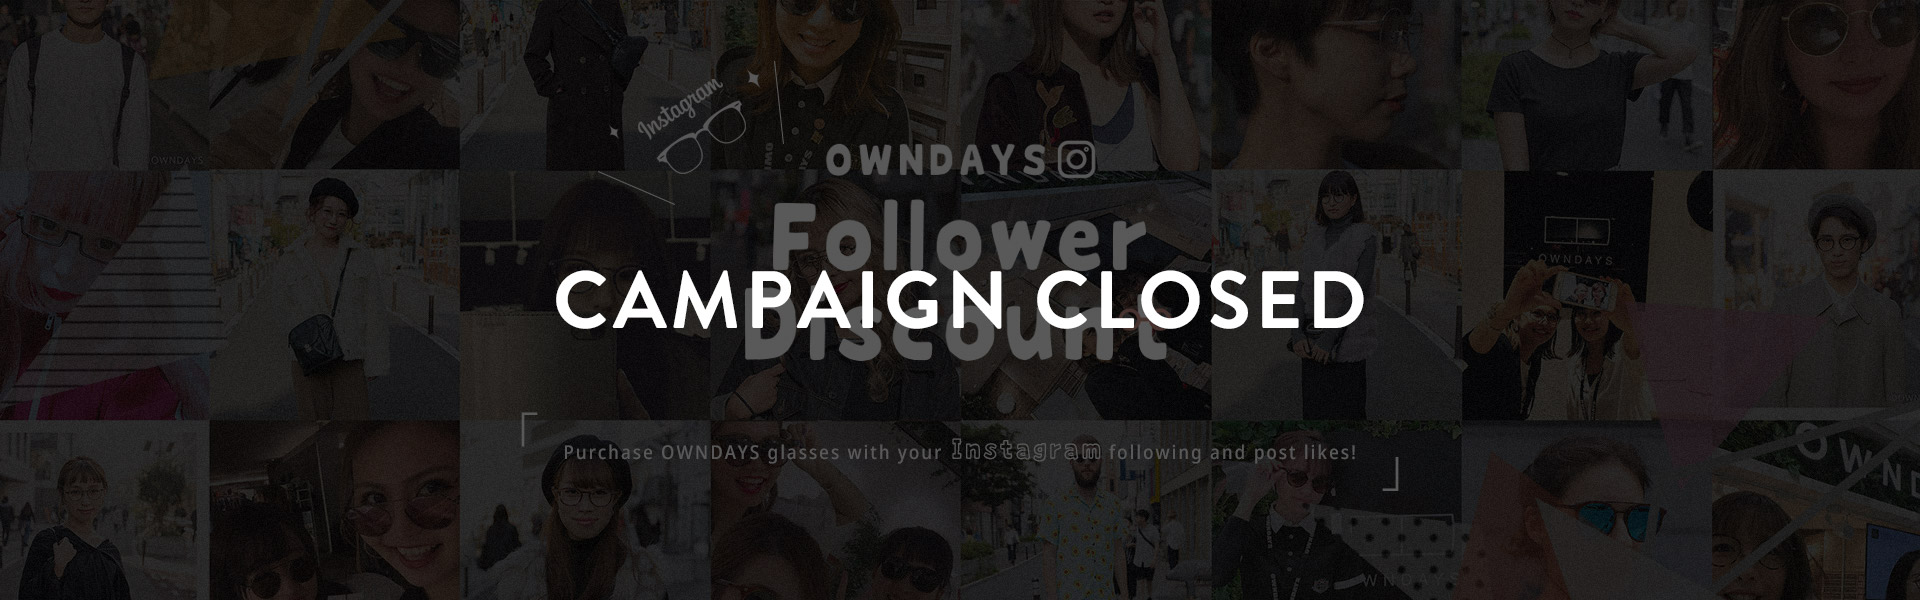 OWNDAYS Follower Discount